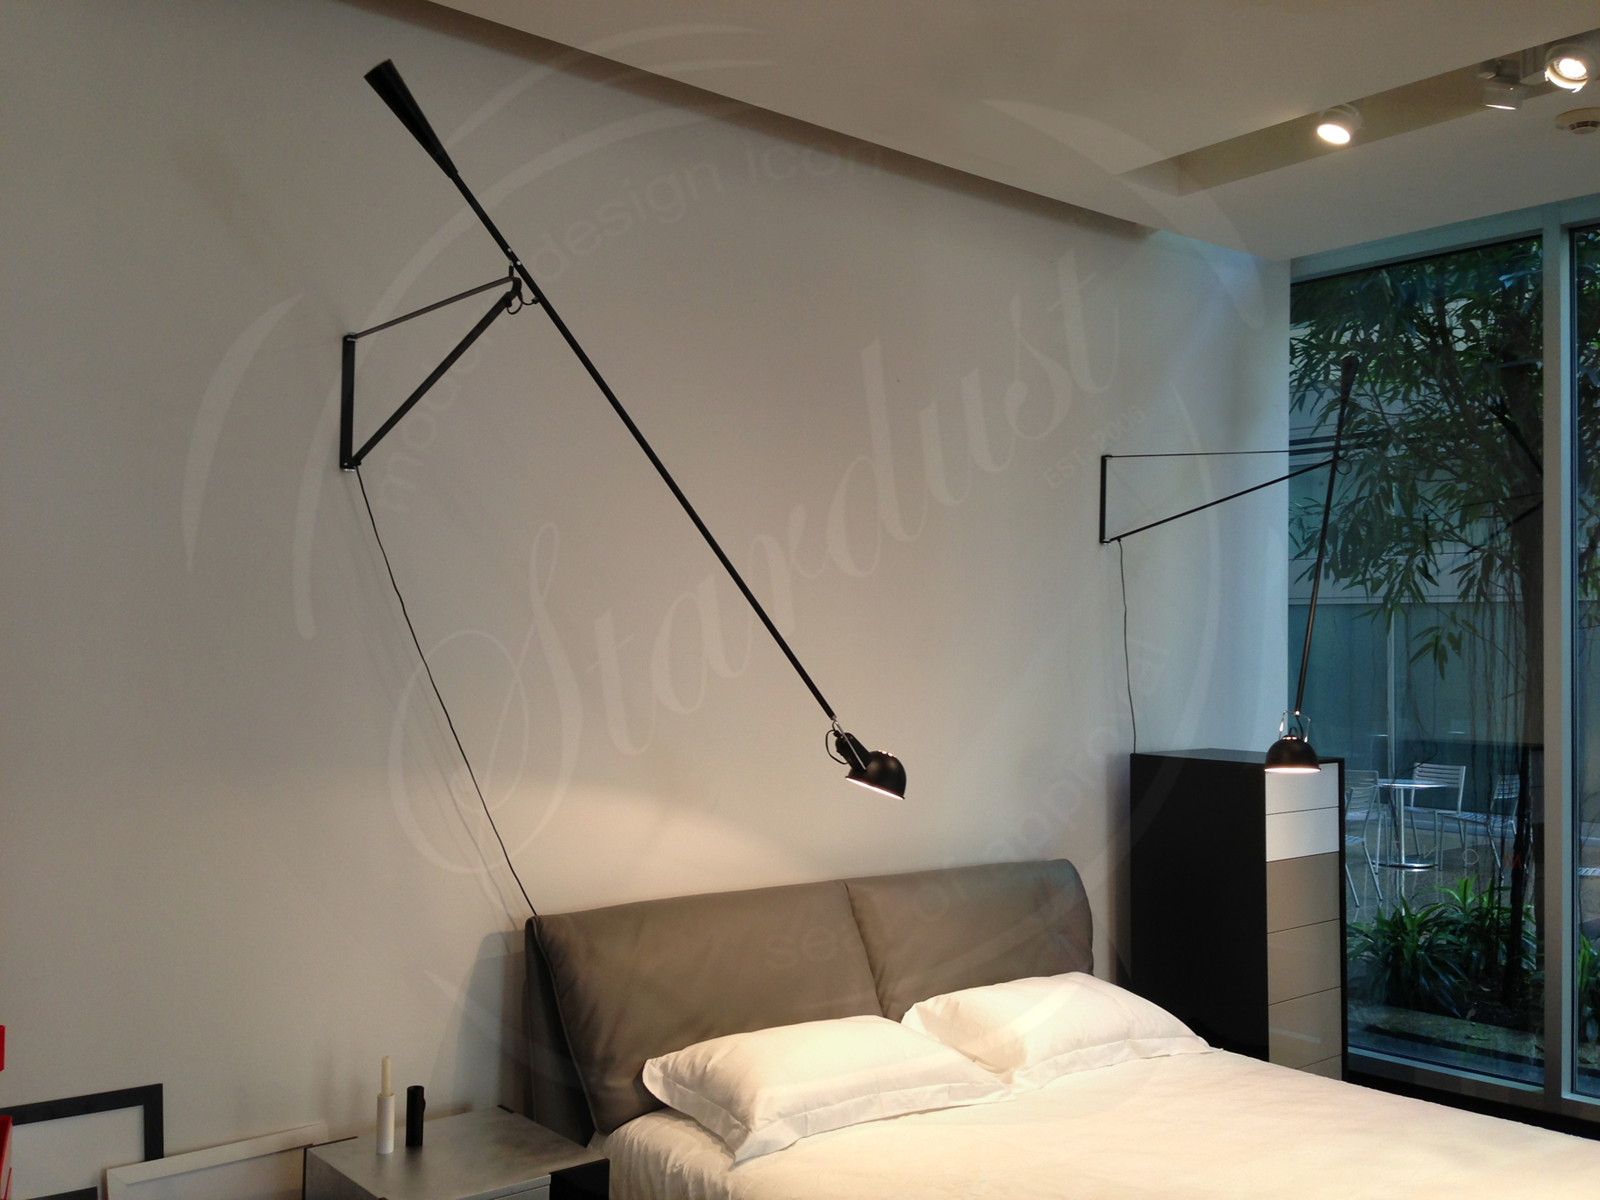 265 wall lamp from flos flos 265 lamp. Black Bedroom Furniture Sets. Home Design Ideas